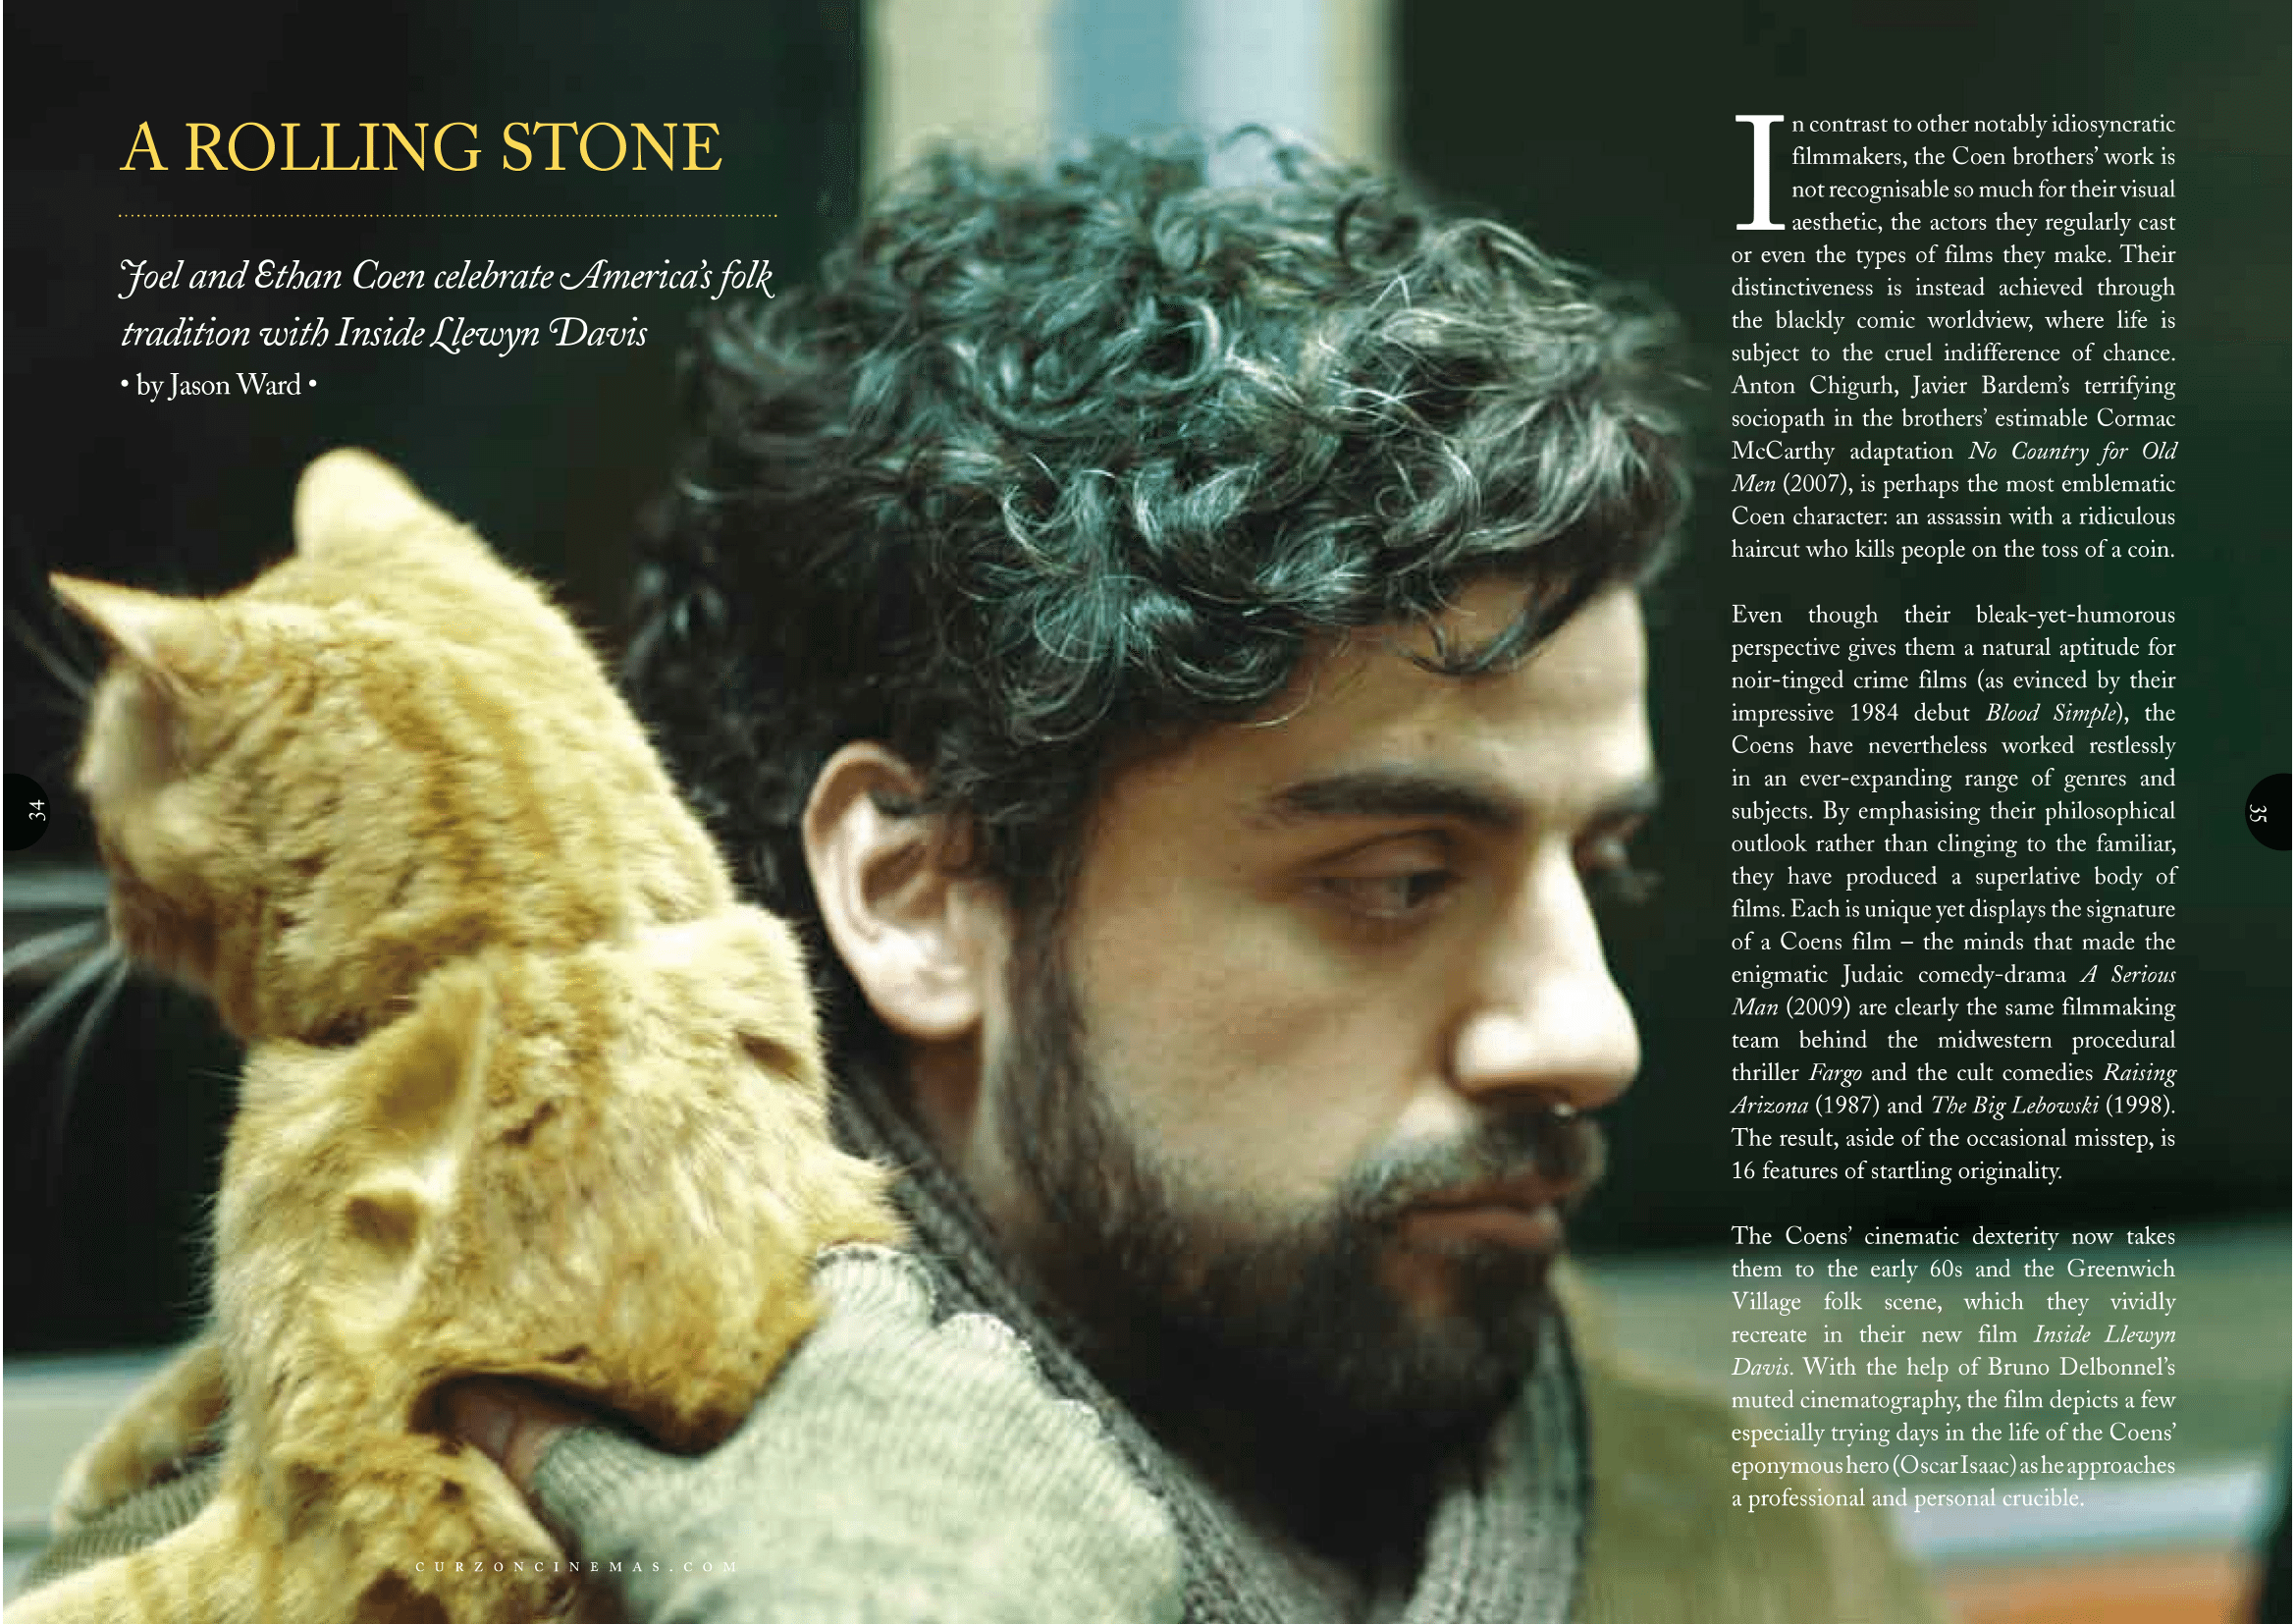 Inside Llewyn Davis (2014), directed by Joel and Ethan Coen and starring Oscar Isaac, Carey Mulligan, Justin Timberlake and Adam Driver.